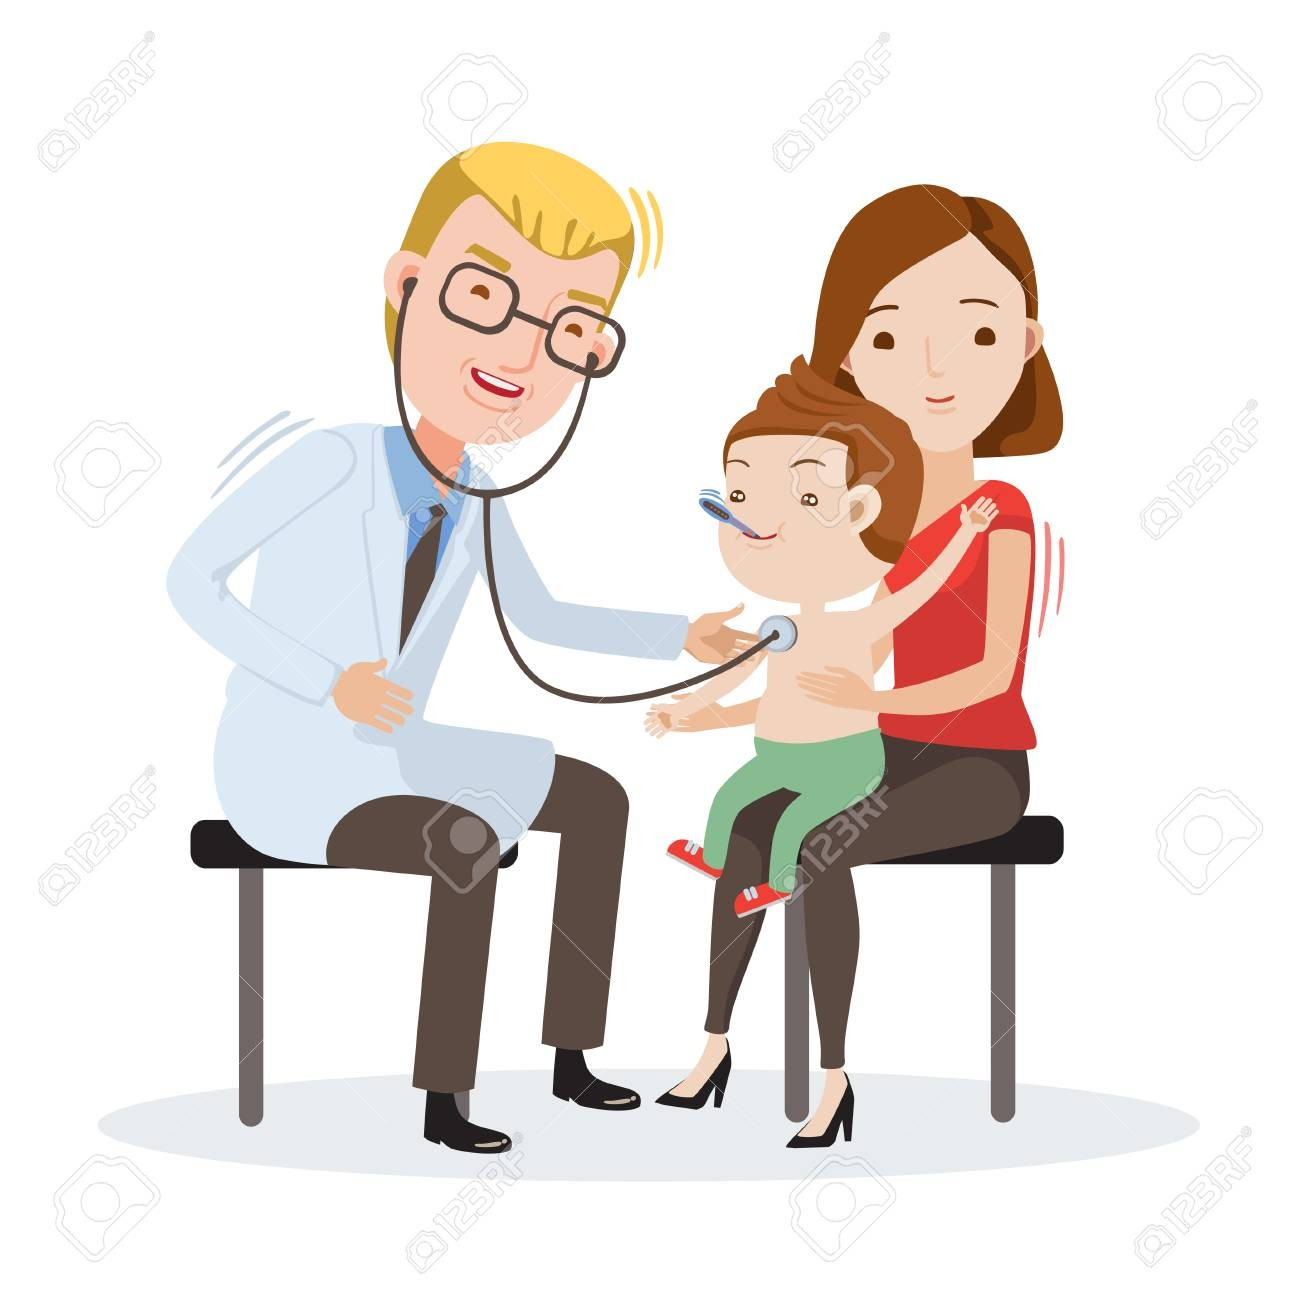 With temperature doctor examining. Doctors clipart body